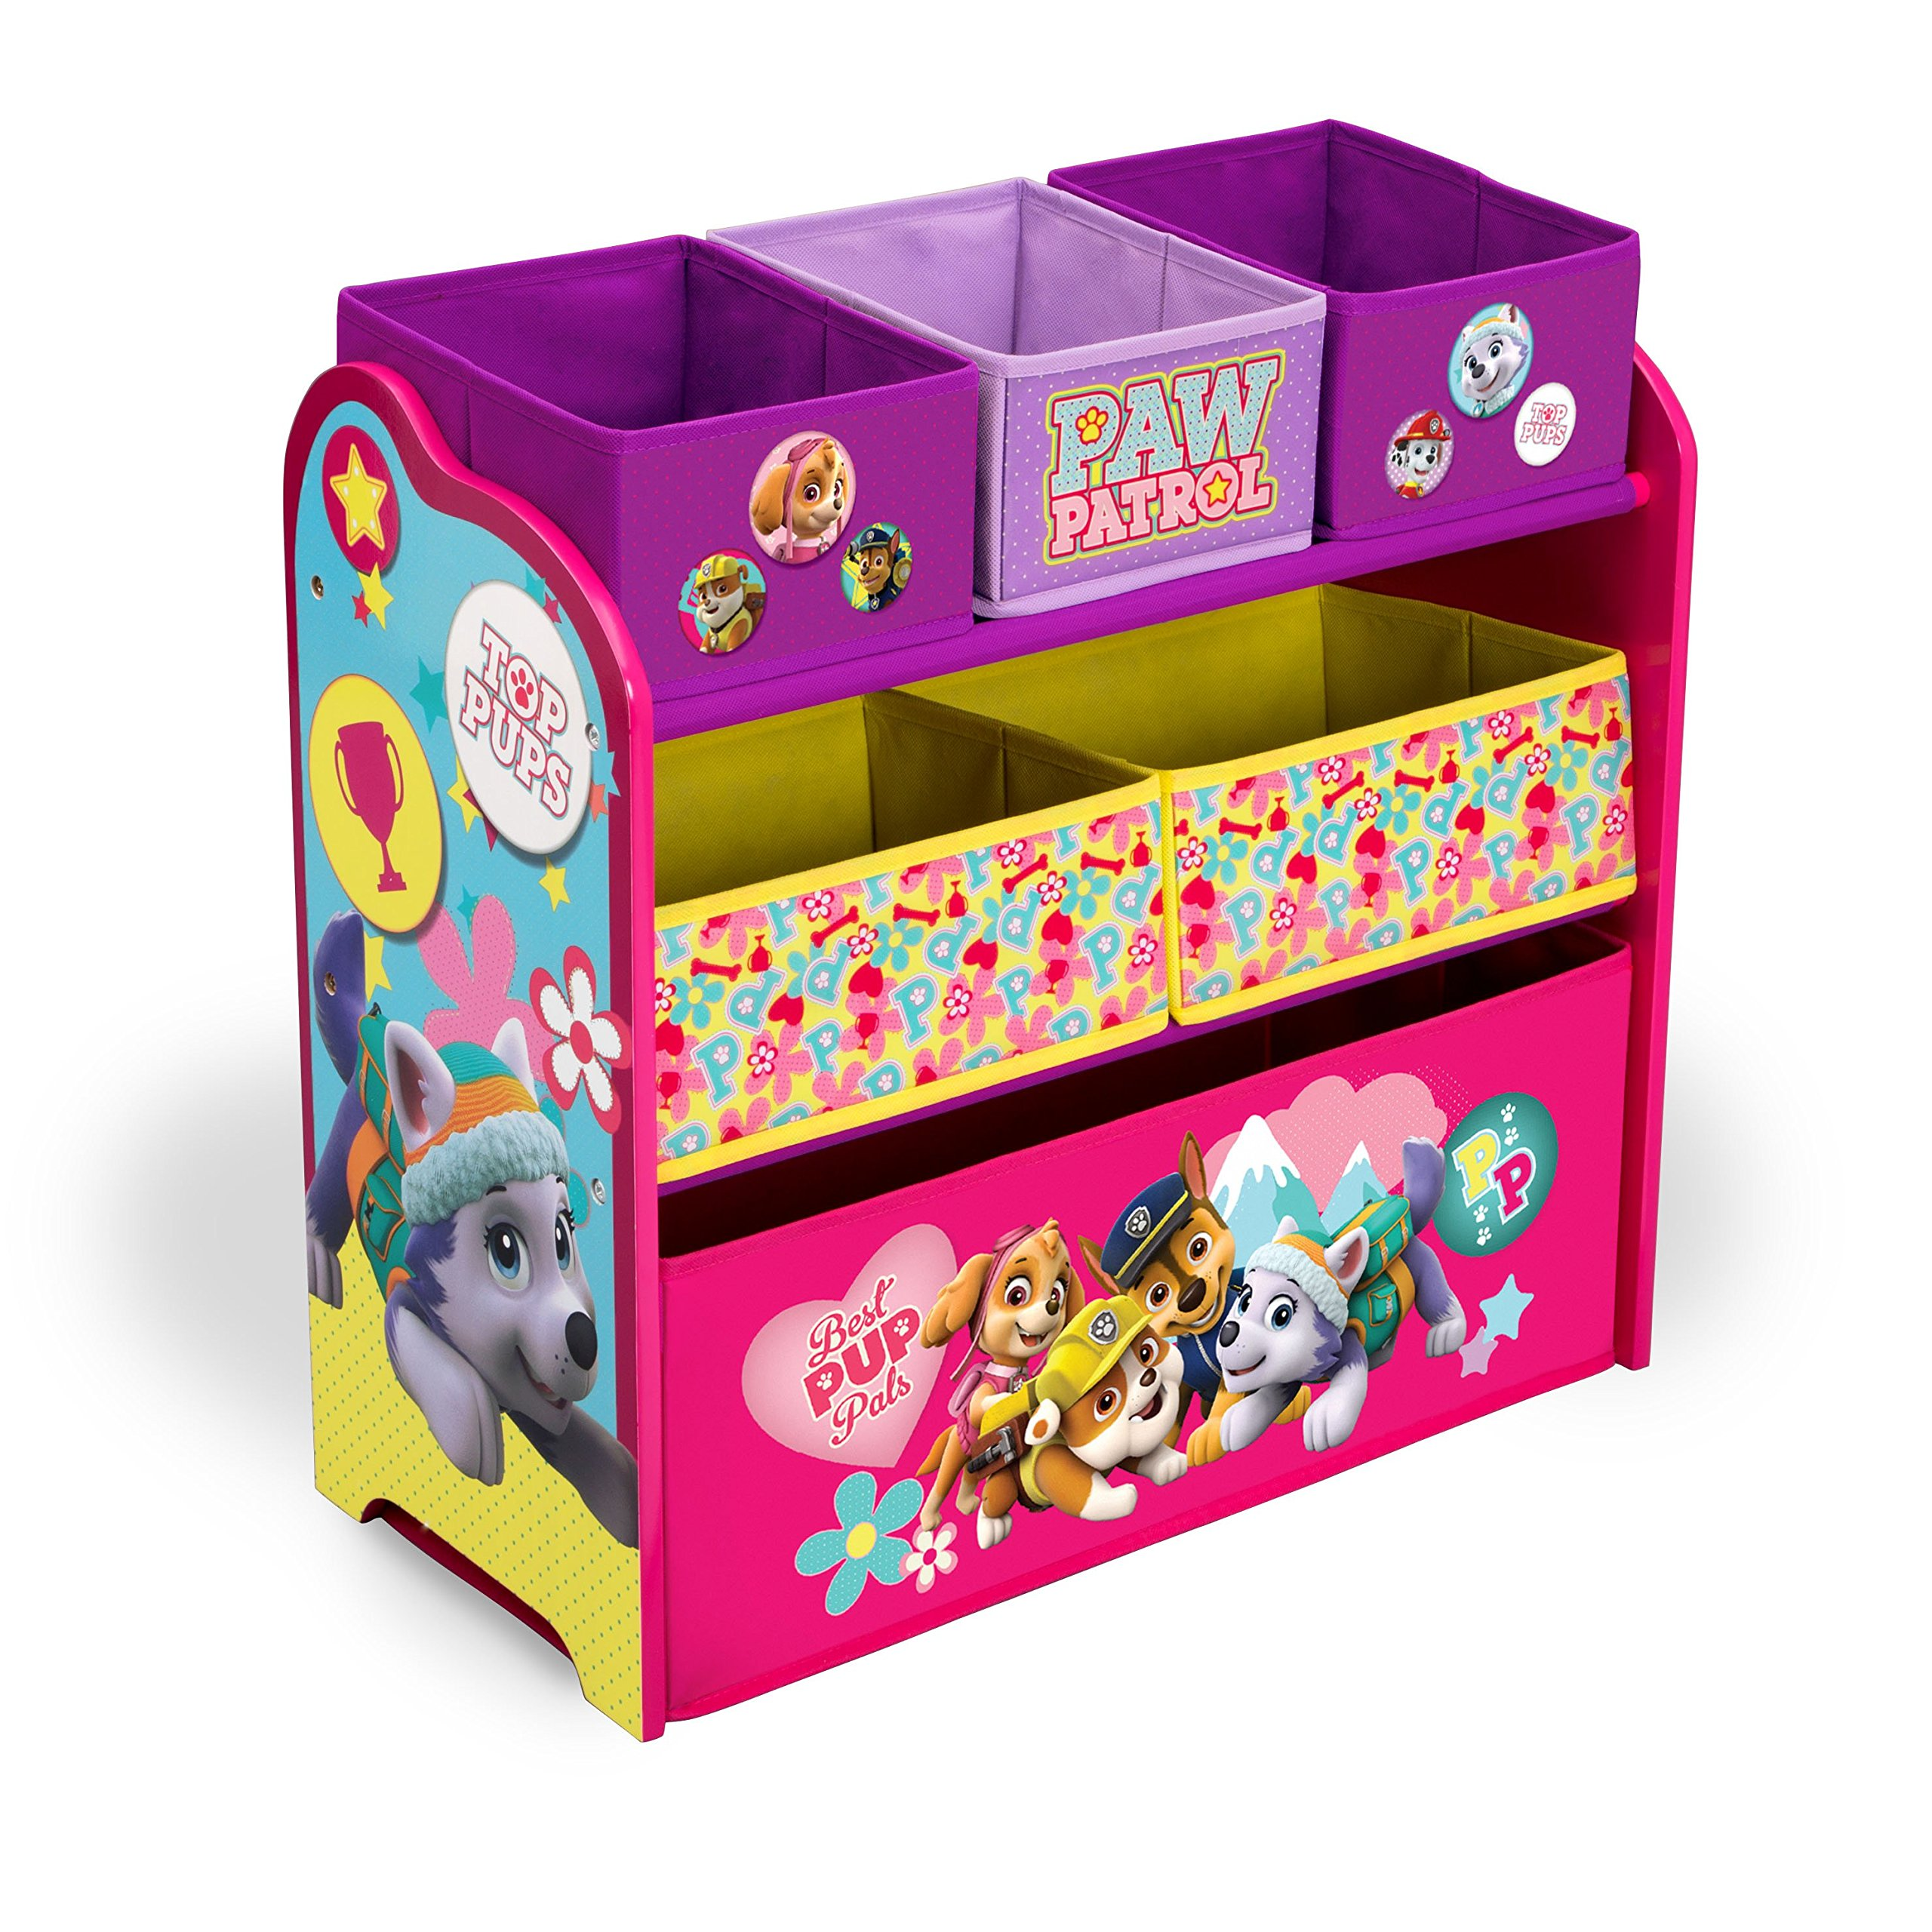 Paw Patrol Kids Toy Organizer Bin Children S Storage Box: Amazon.com: Delta Children Nick Jr. PAW Patrol Skye